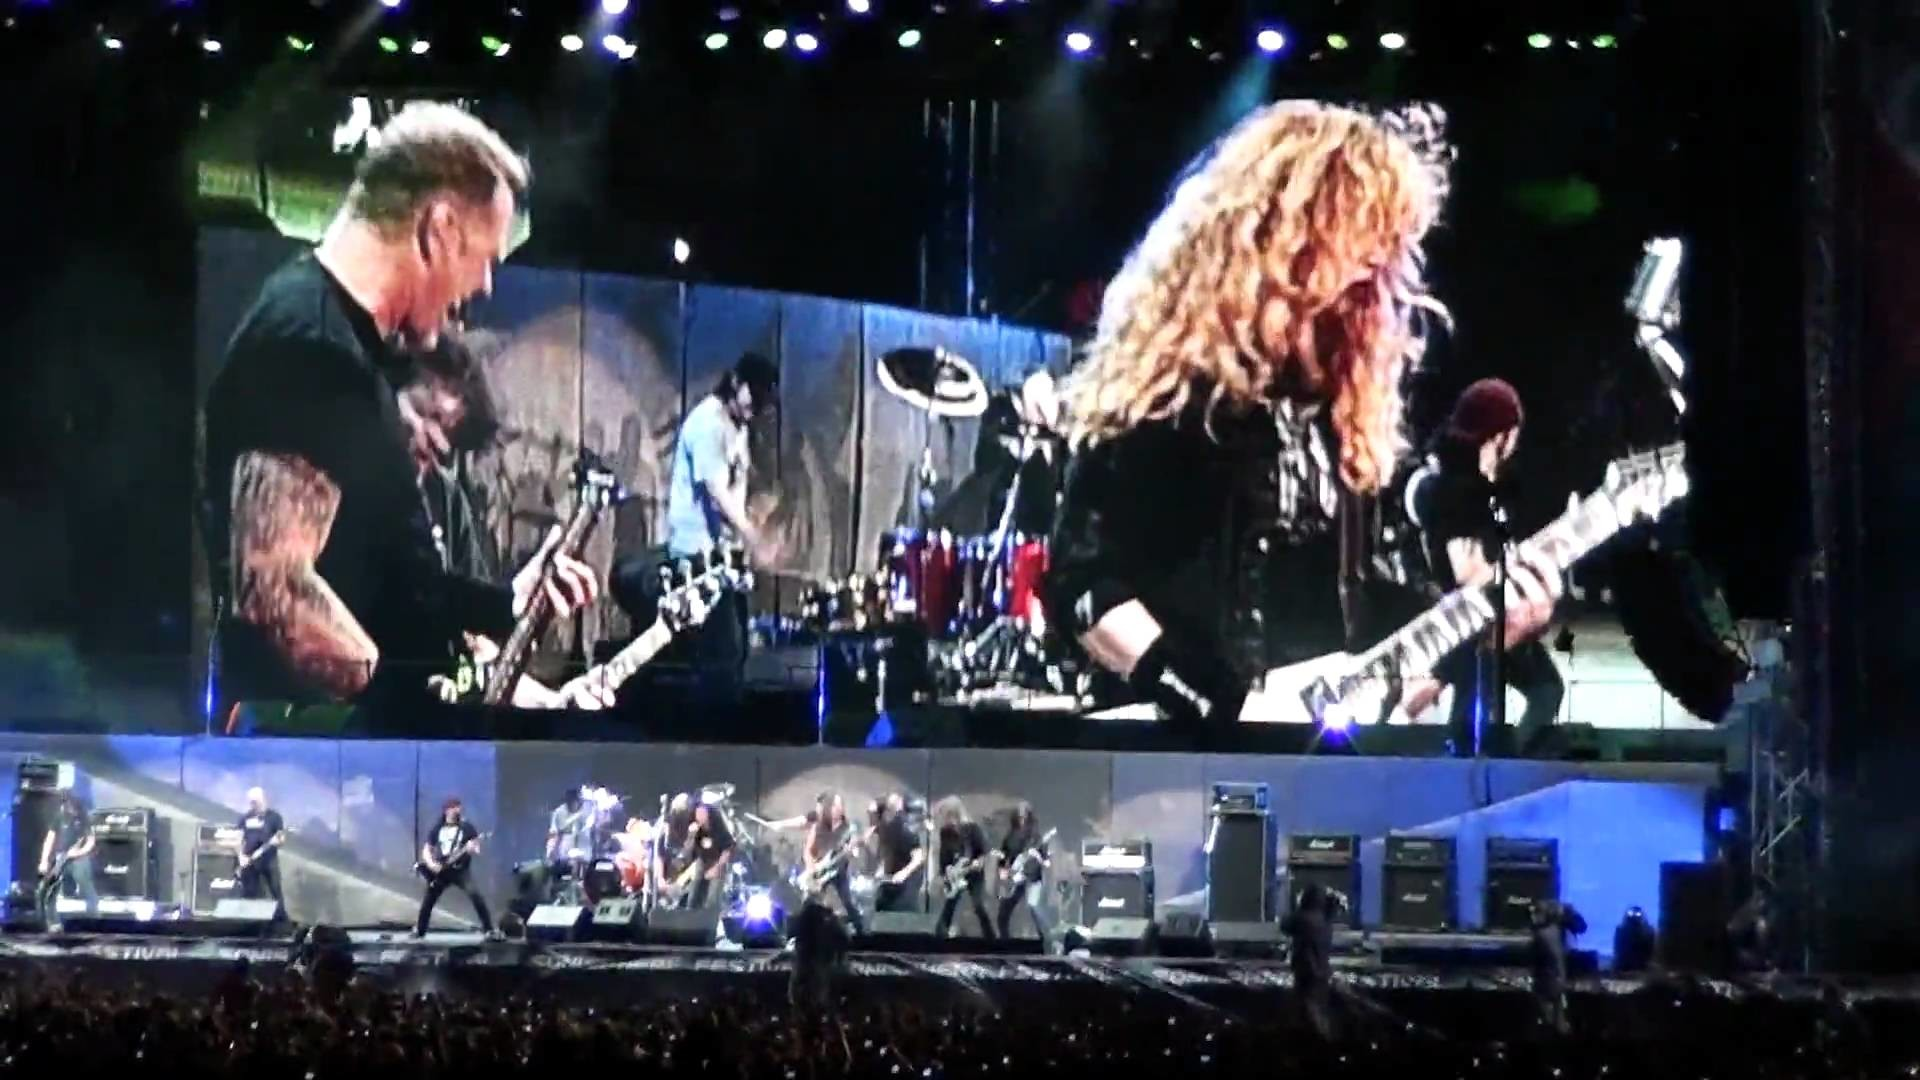 Res: 1920x1080, Megadeth Singer Dave Mustaine Reveals His New 'Big Four' Lineup Without  Metallica And Slayer | Empty Lighthouse Magazine